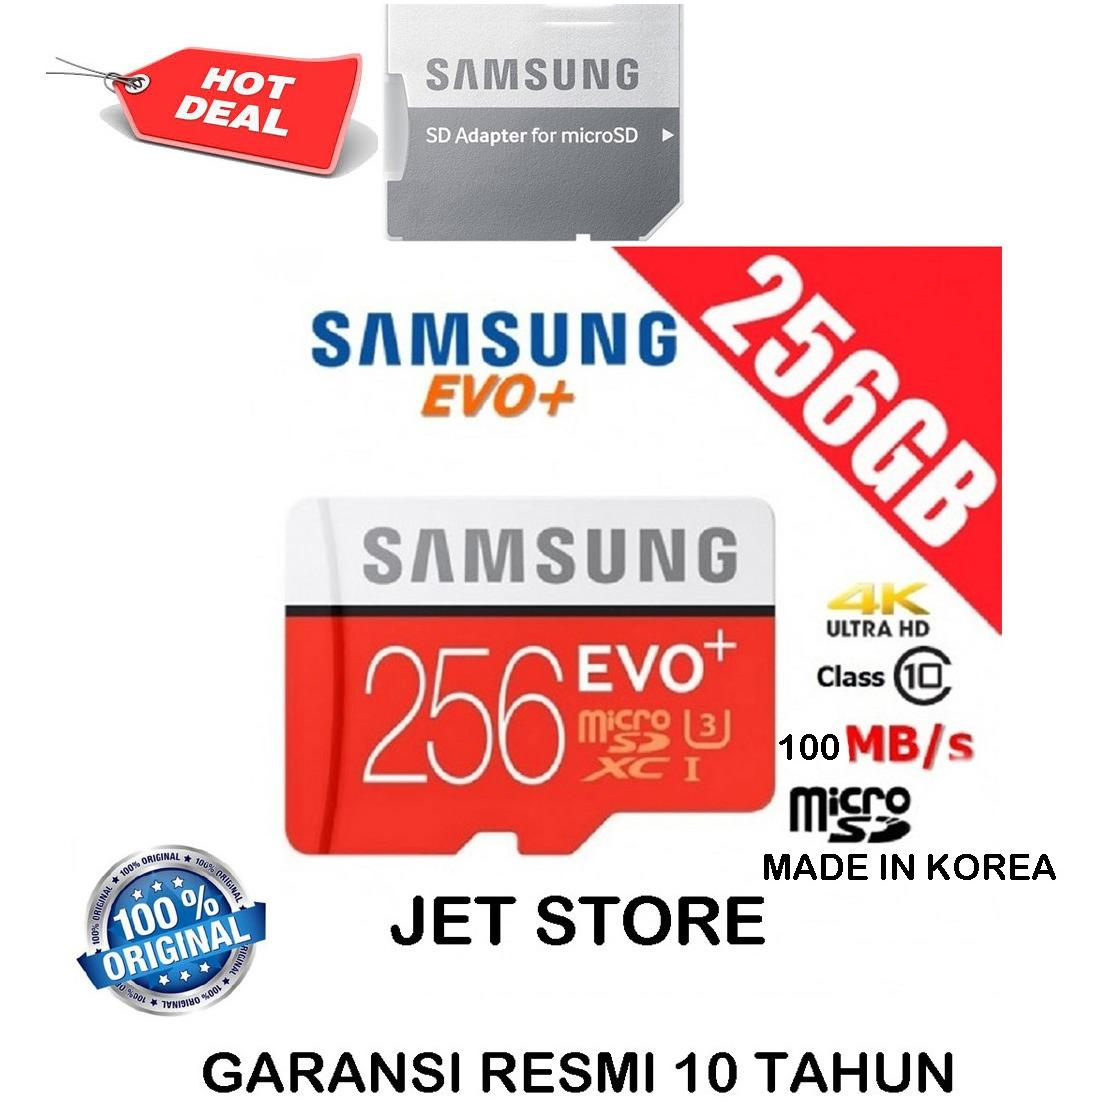 ... Samsung Memory Card MicroSDXC Evo Plus 256GB 100MB s with Adapter Merah